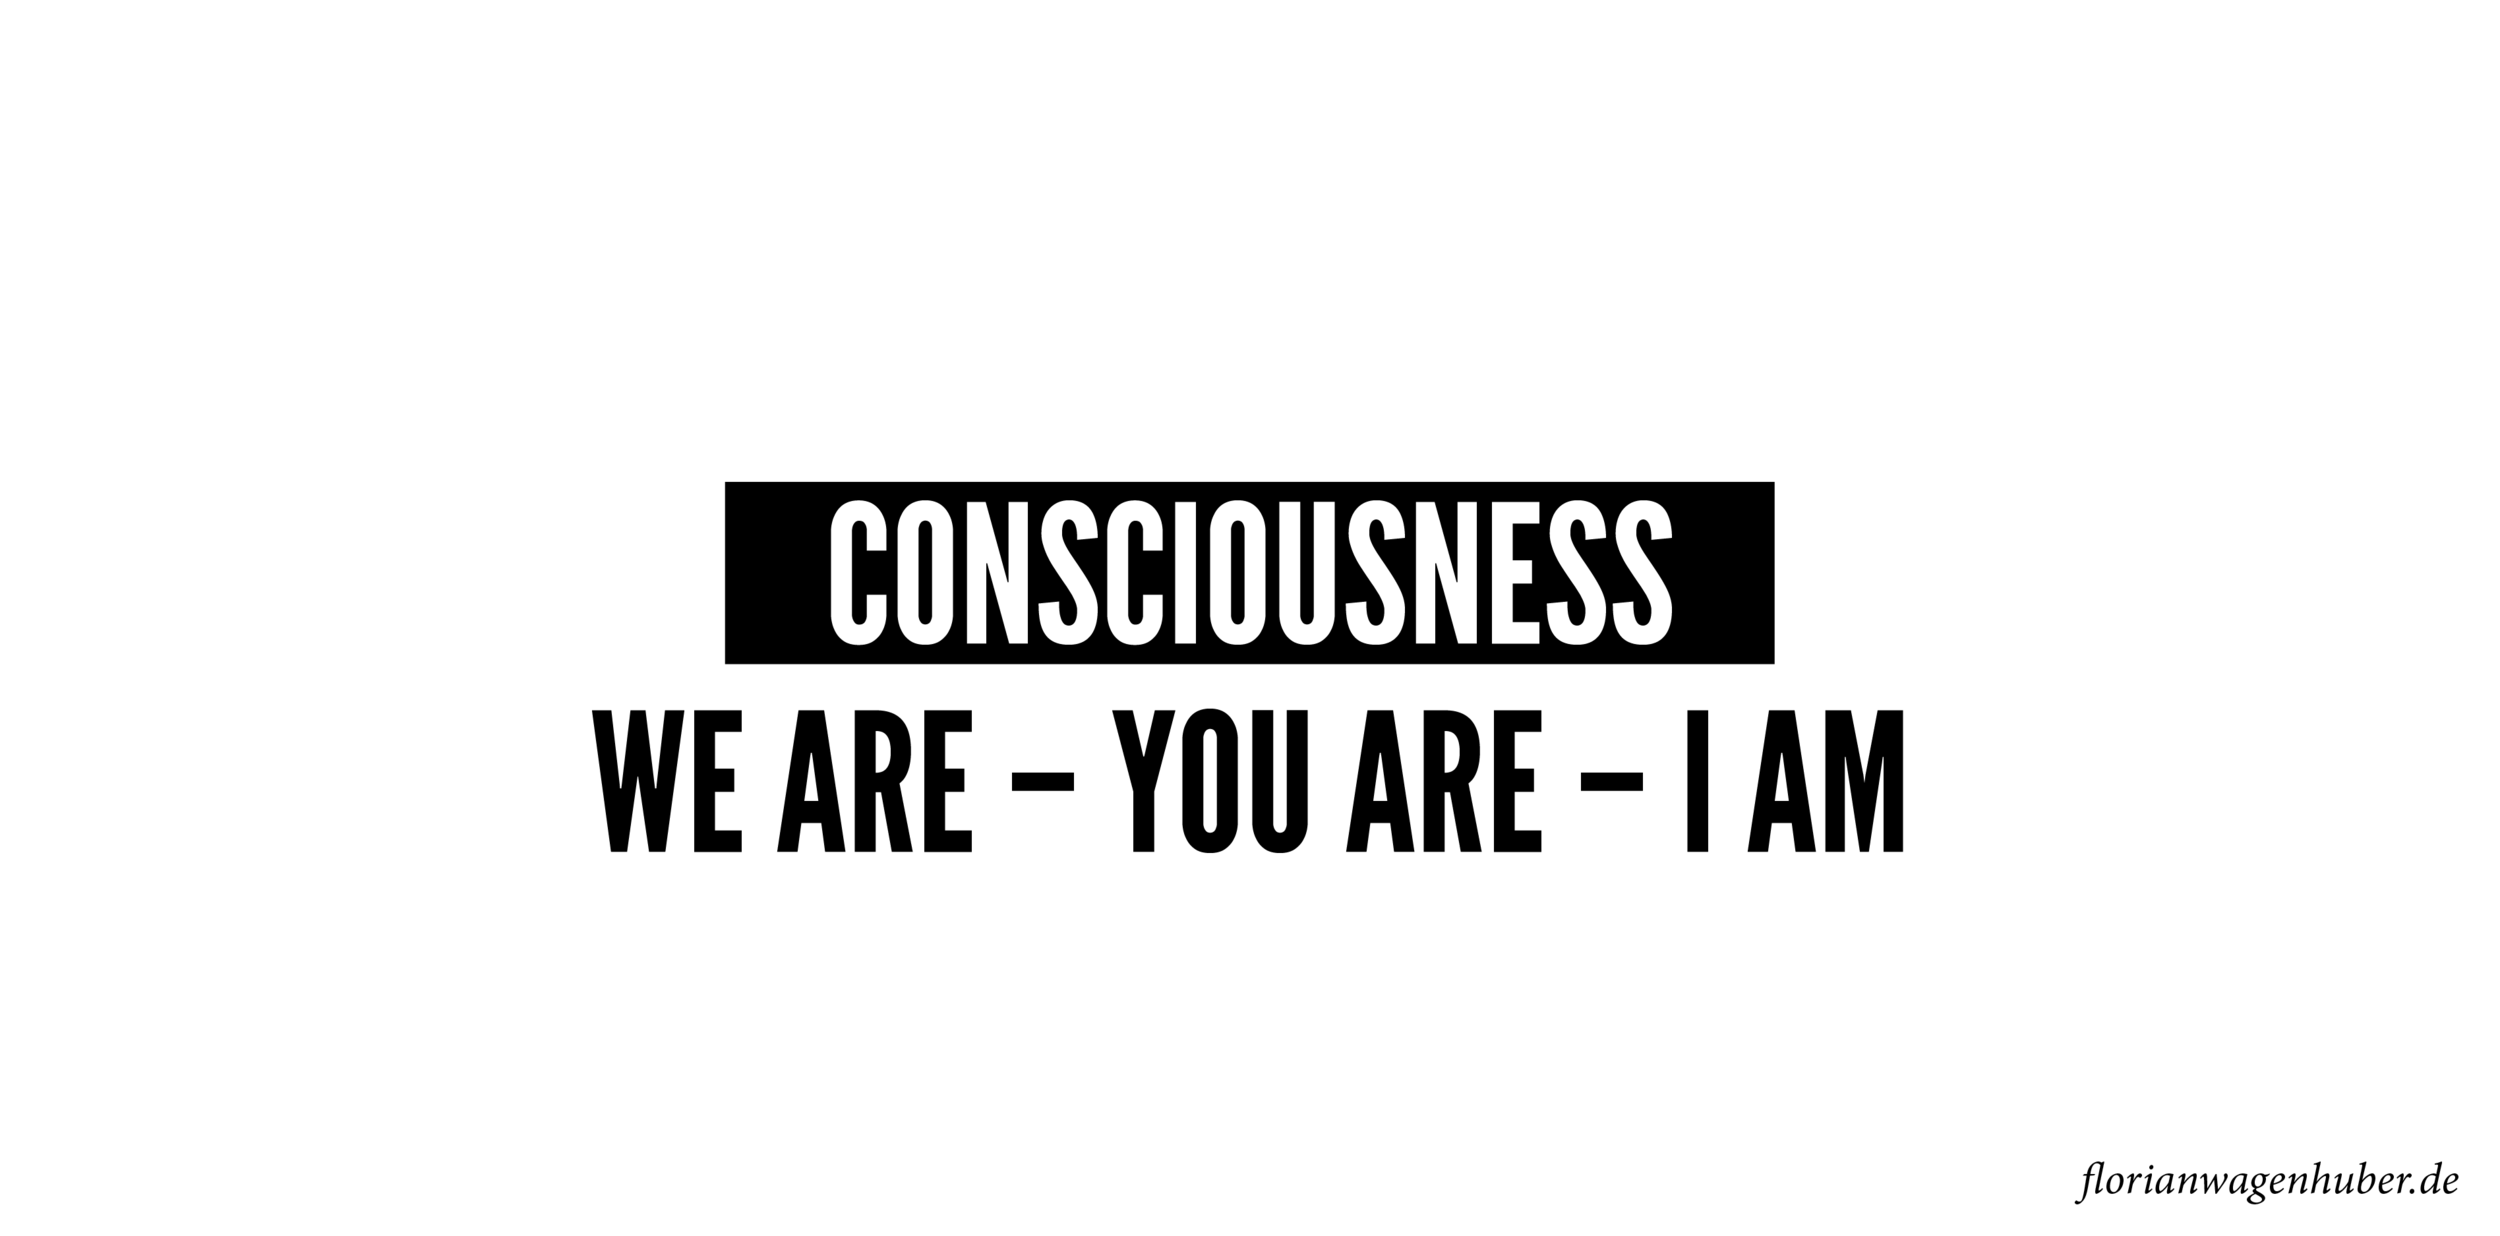 Consciousness-we-are-you-are-i-am